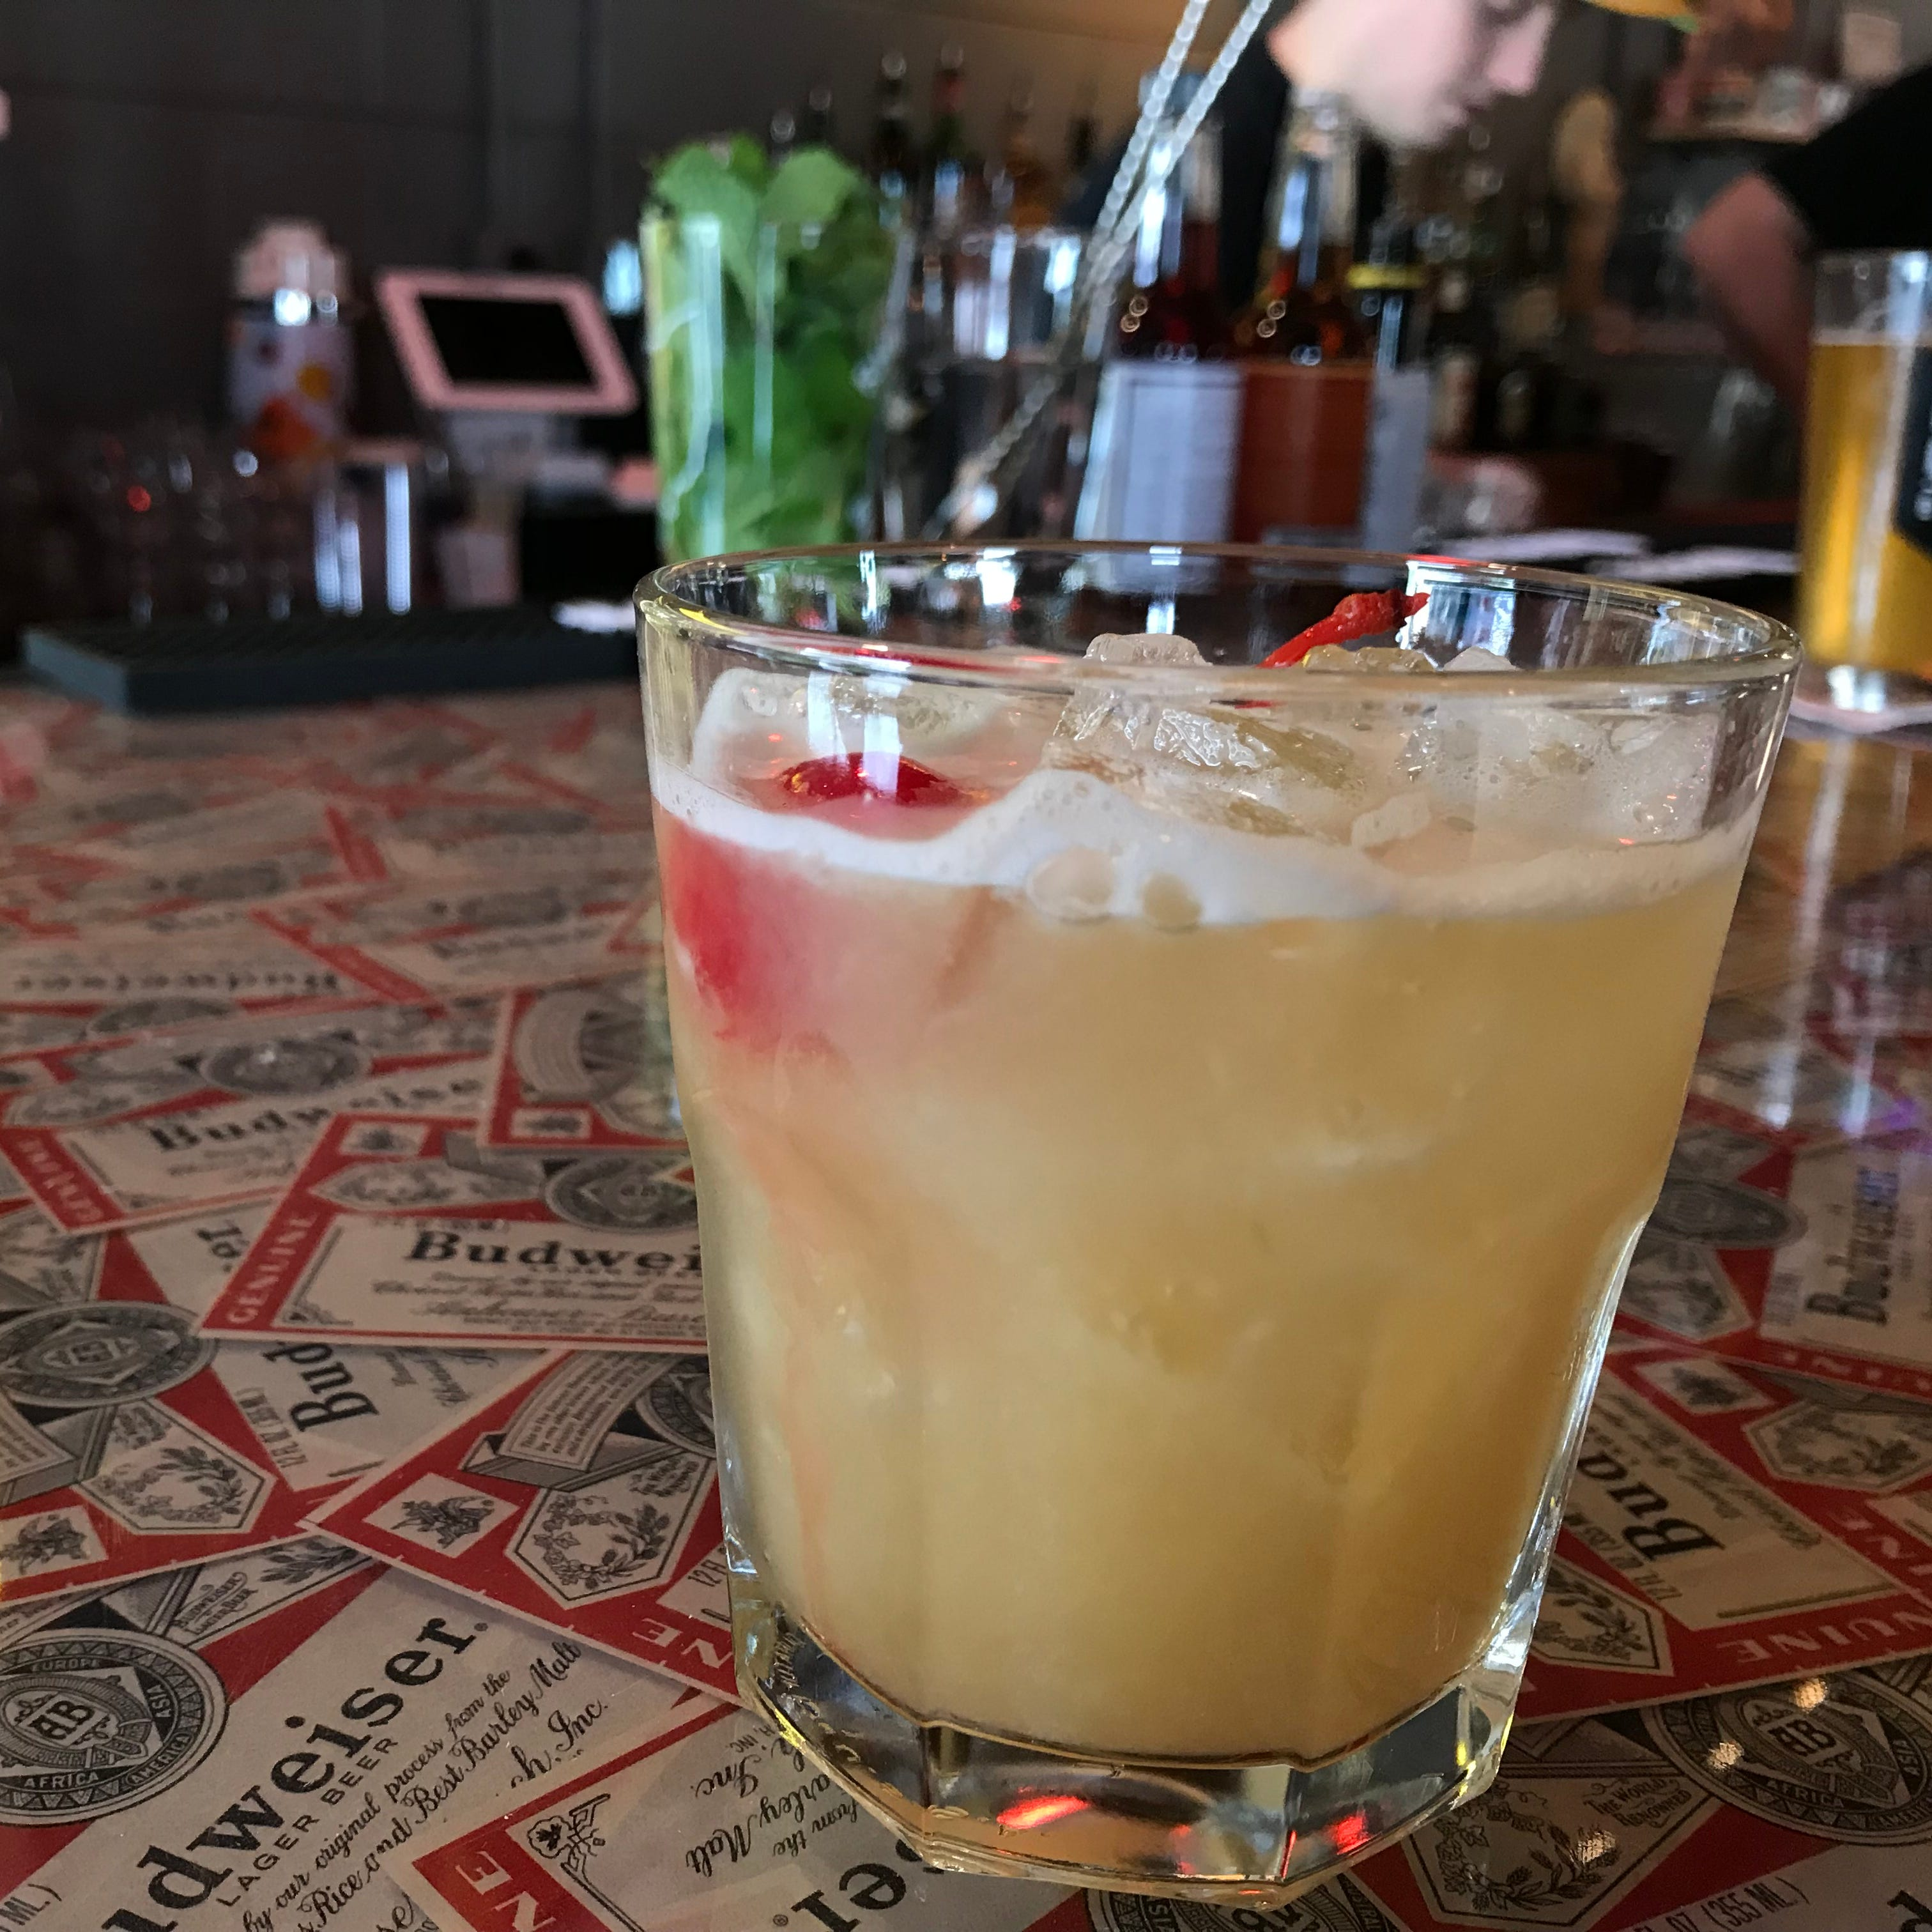 Every specialty cocktail at this new south-side bar is just $6. SIX DOLLARS!